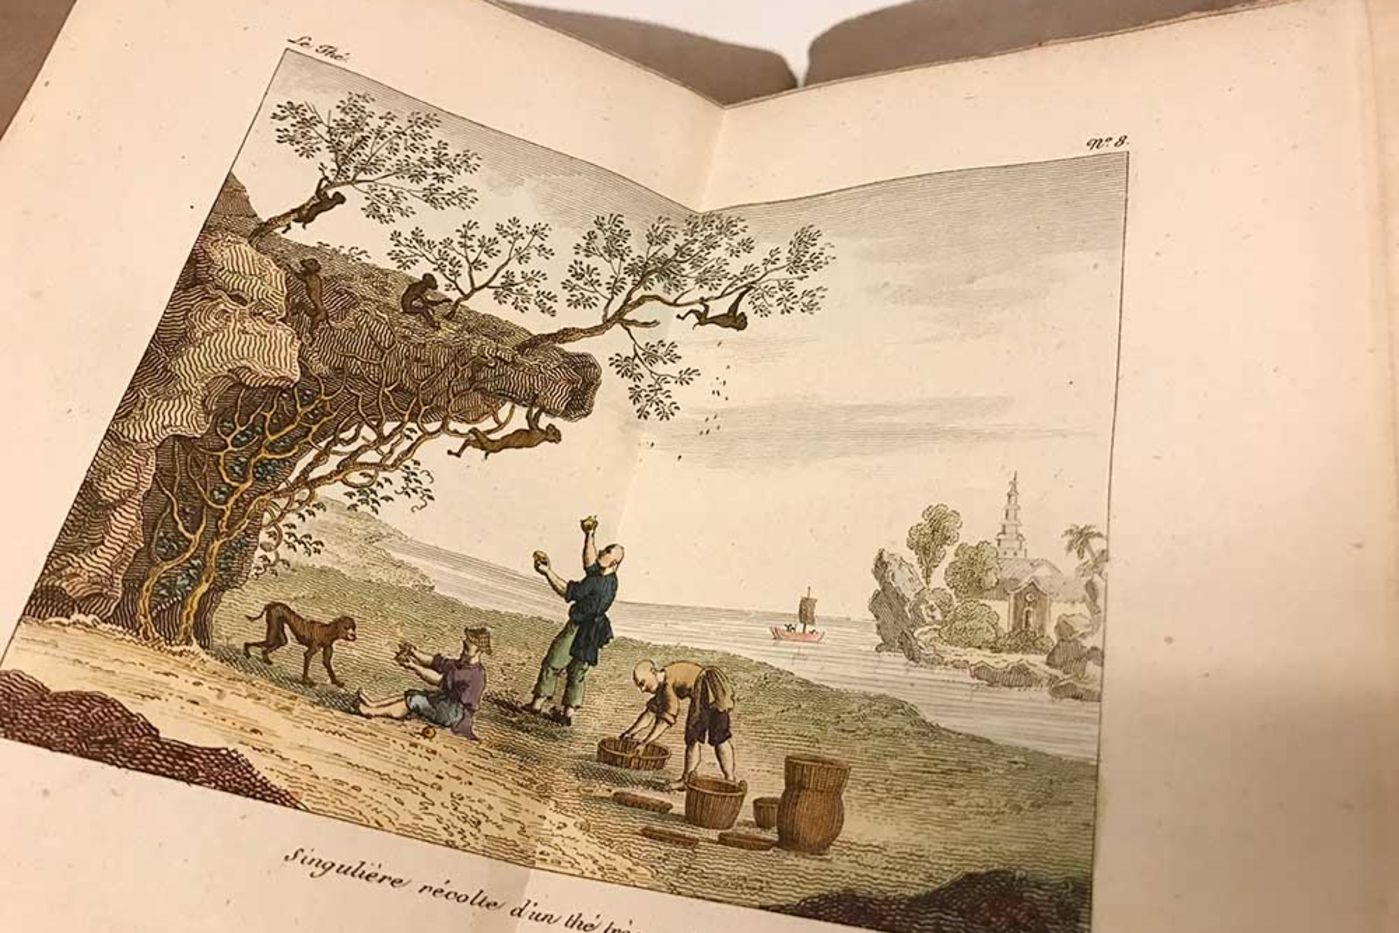 Color illustration in a book, showing monkeys climbing a cliff and picking leaves off trees while people below gather the leaves into baskets